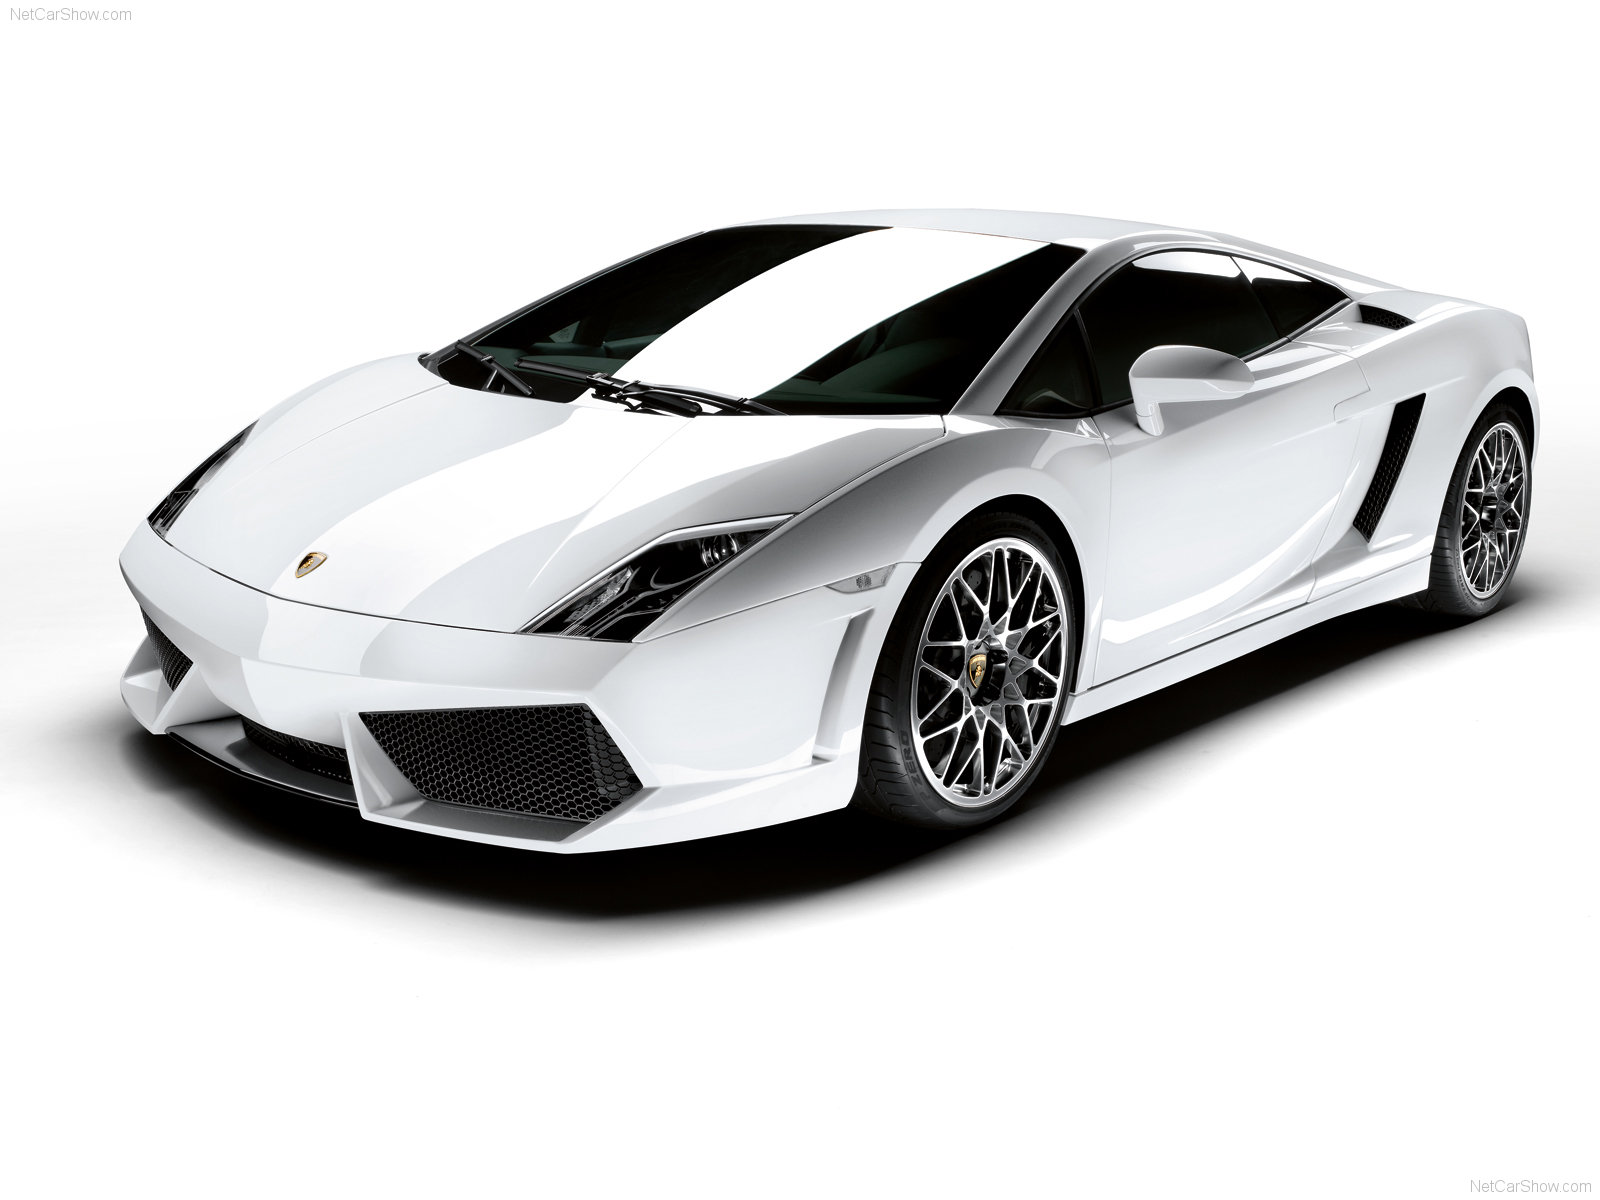 Lamborghini Gallardo HD 404.93 Kb